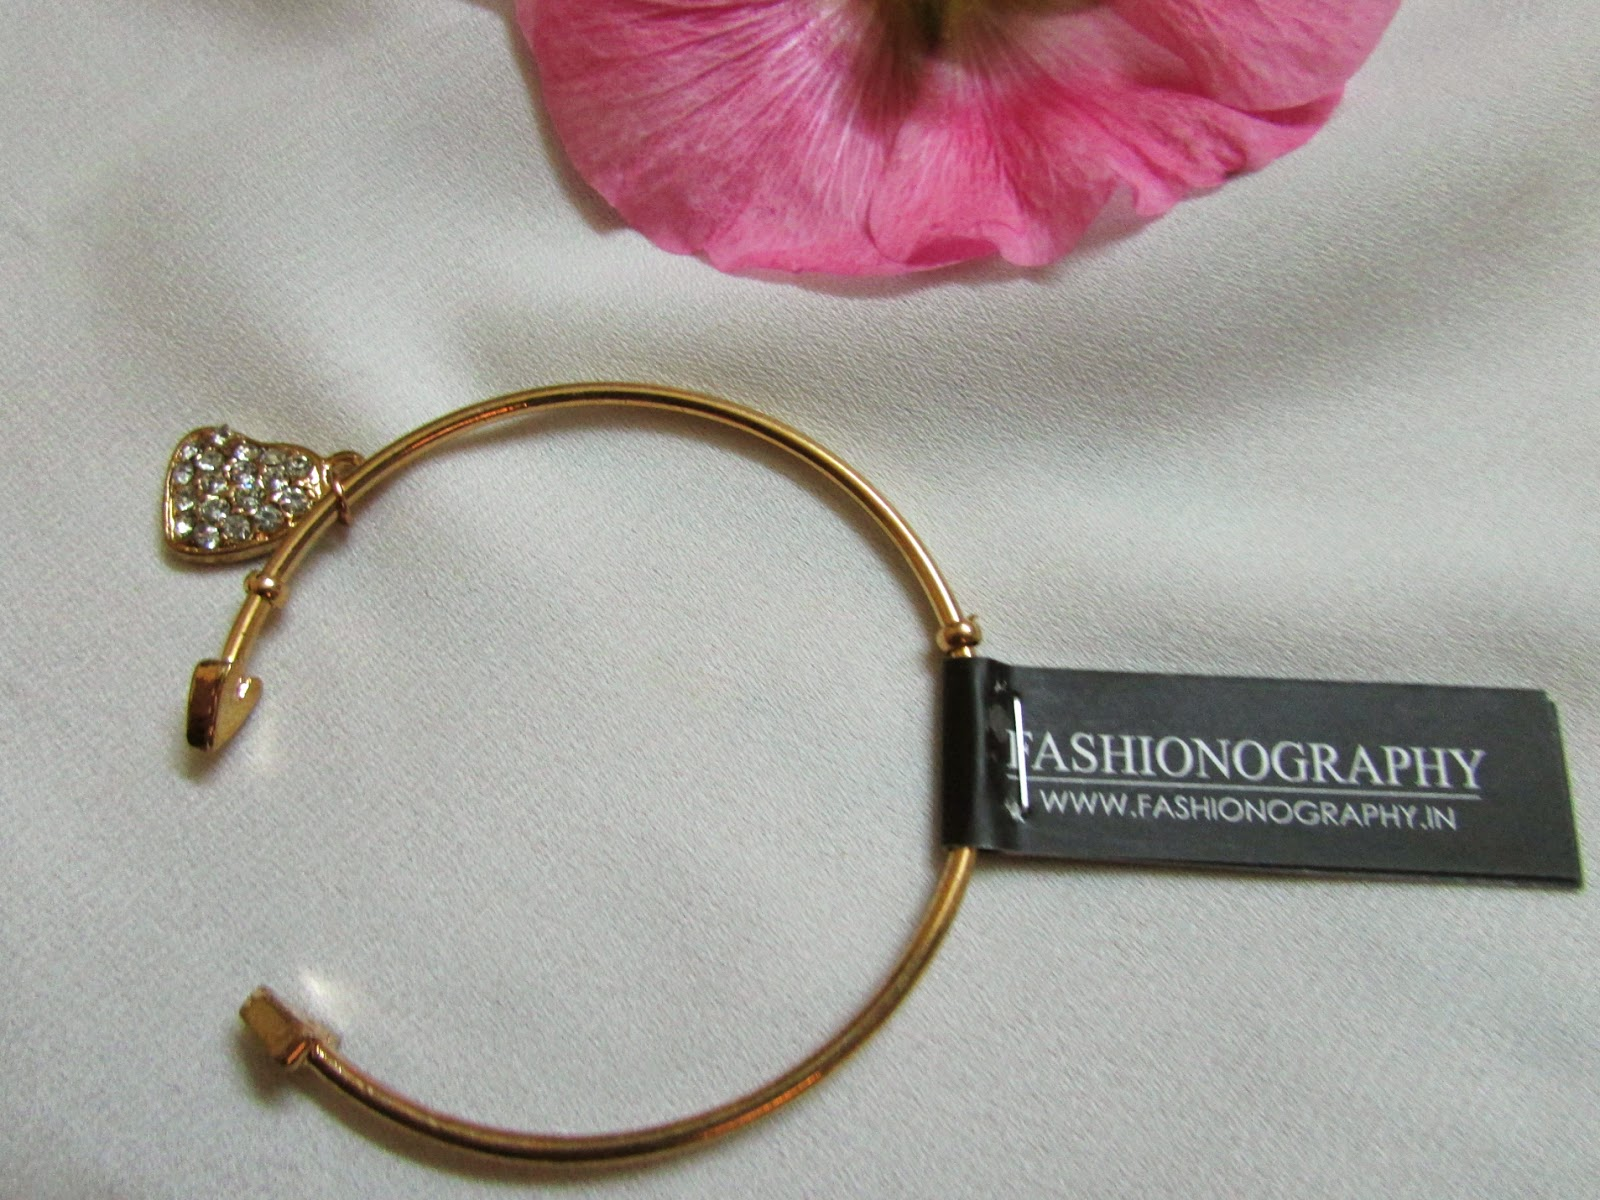 Fab Bag Dicount coupon,  Fab Bag, Fab Bag india, Fab Bag subscription, face, March Fab Bag Review, Palladio Lipstick,Soultree Colour Kohl, INVEDA BB Cream,Sabastian Volupt Spray,Fashionography Bracelet, MAKEUPFIRDIFFERENCE, beauty , fashion,beauty and fashion,beauty blog, fashion blog , indian beauty blog,indian fashion blog, beauty and fashion blog, indian beauty and fashion blog, indian bloggers, indian beauty bloggers, indian fashion bloggers,indian bloggers online, top 10 indian bloggers, top indian bloggers,top 10 fashion bloggers, indian bloggers on blogspot,home remedies, how to